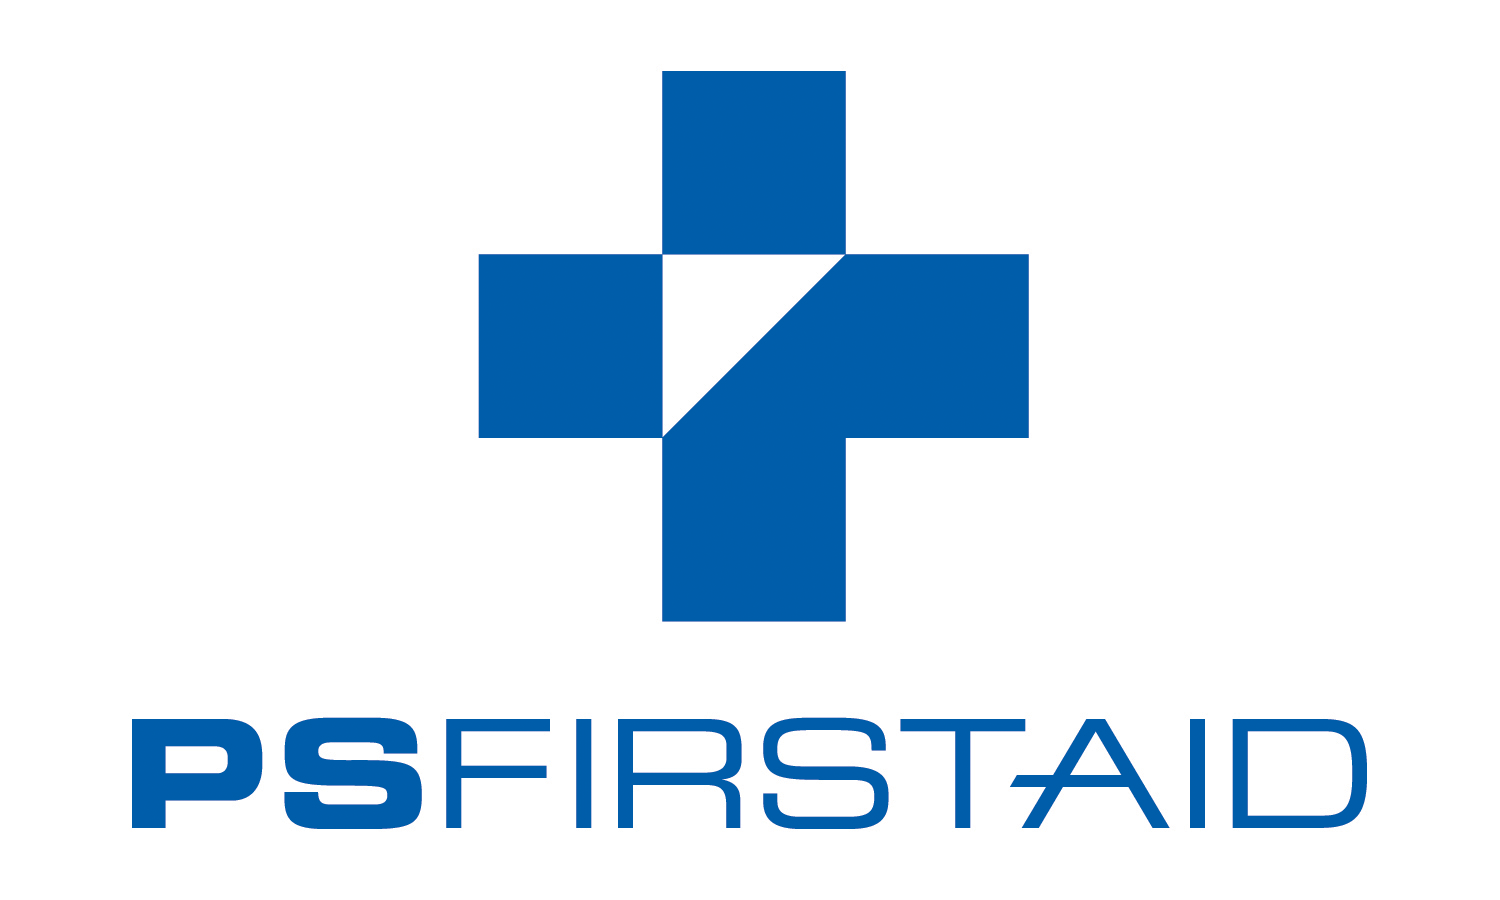 PS FIRSTAID